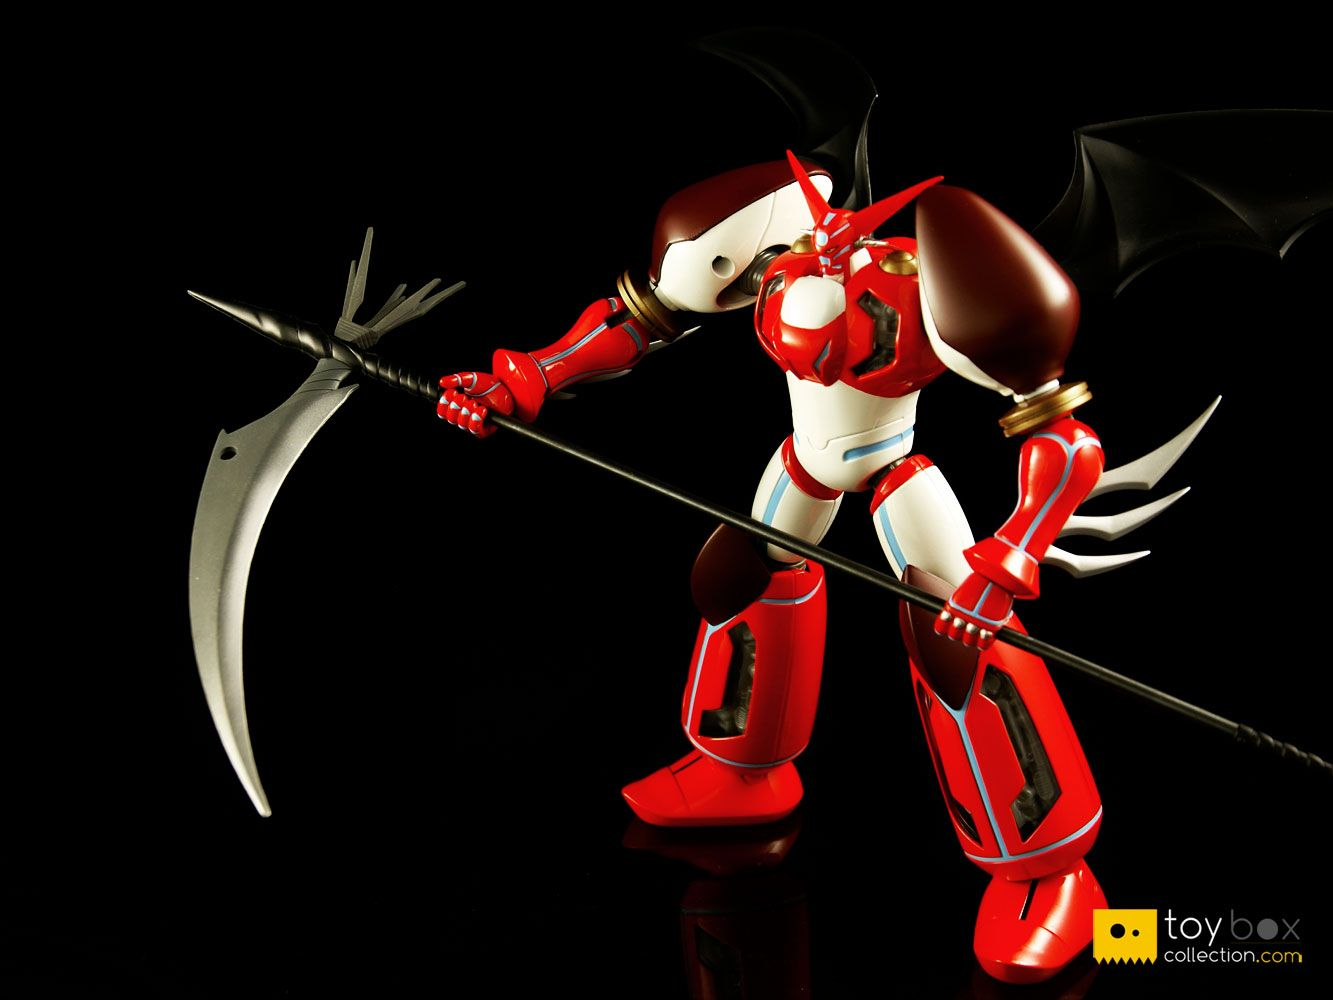 Review of aoshima shin seiki gokin shin getter 1 anime export w wings ver toyboxcollection